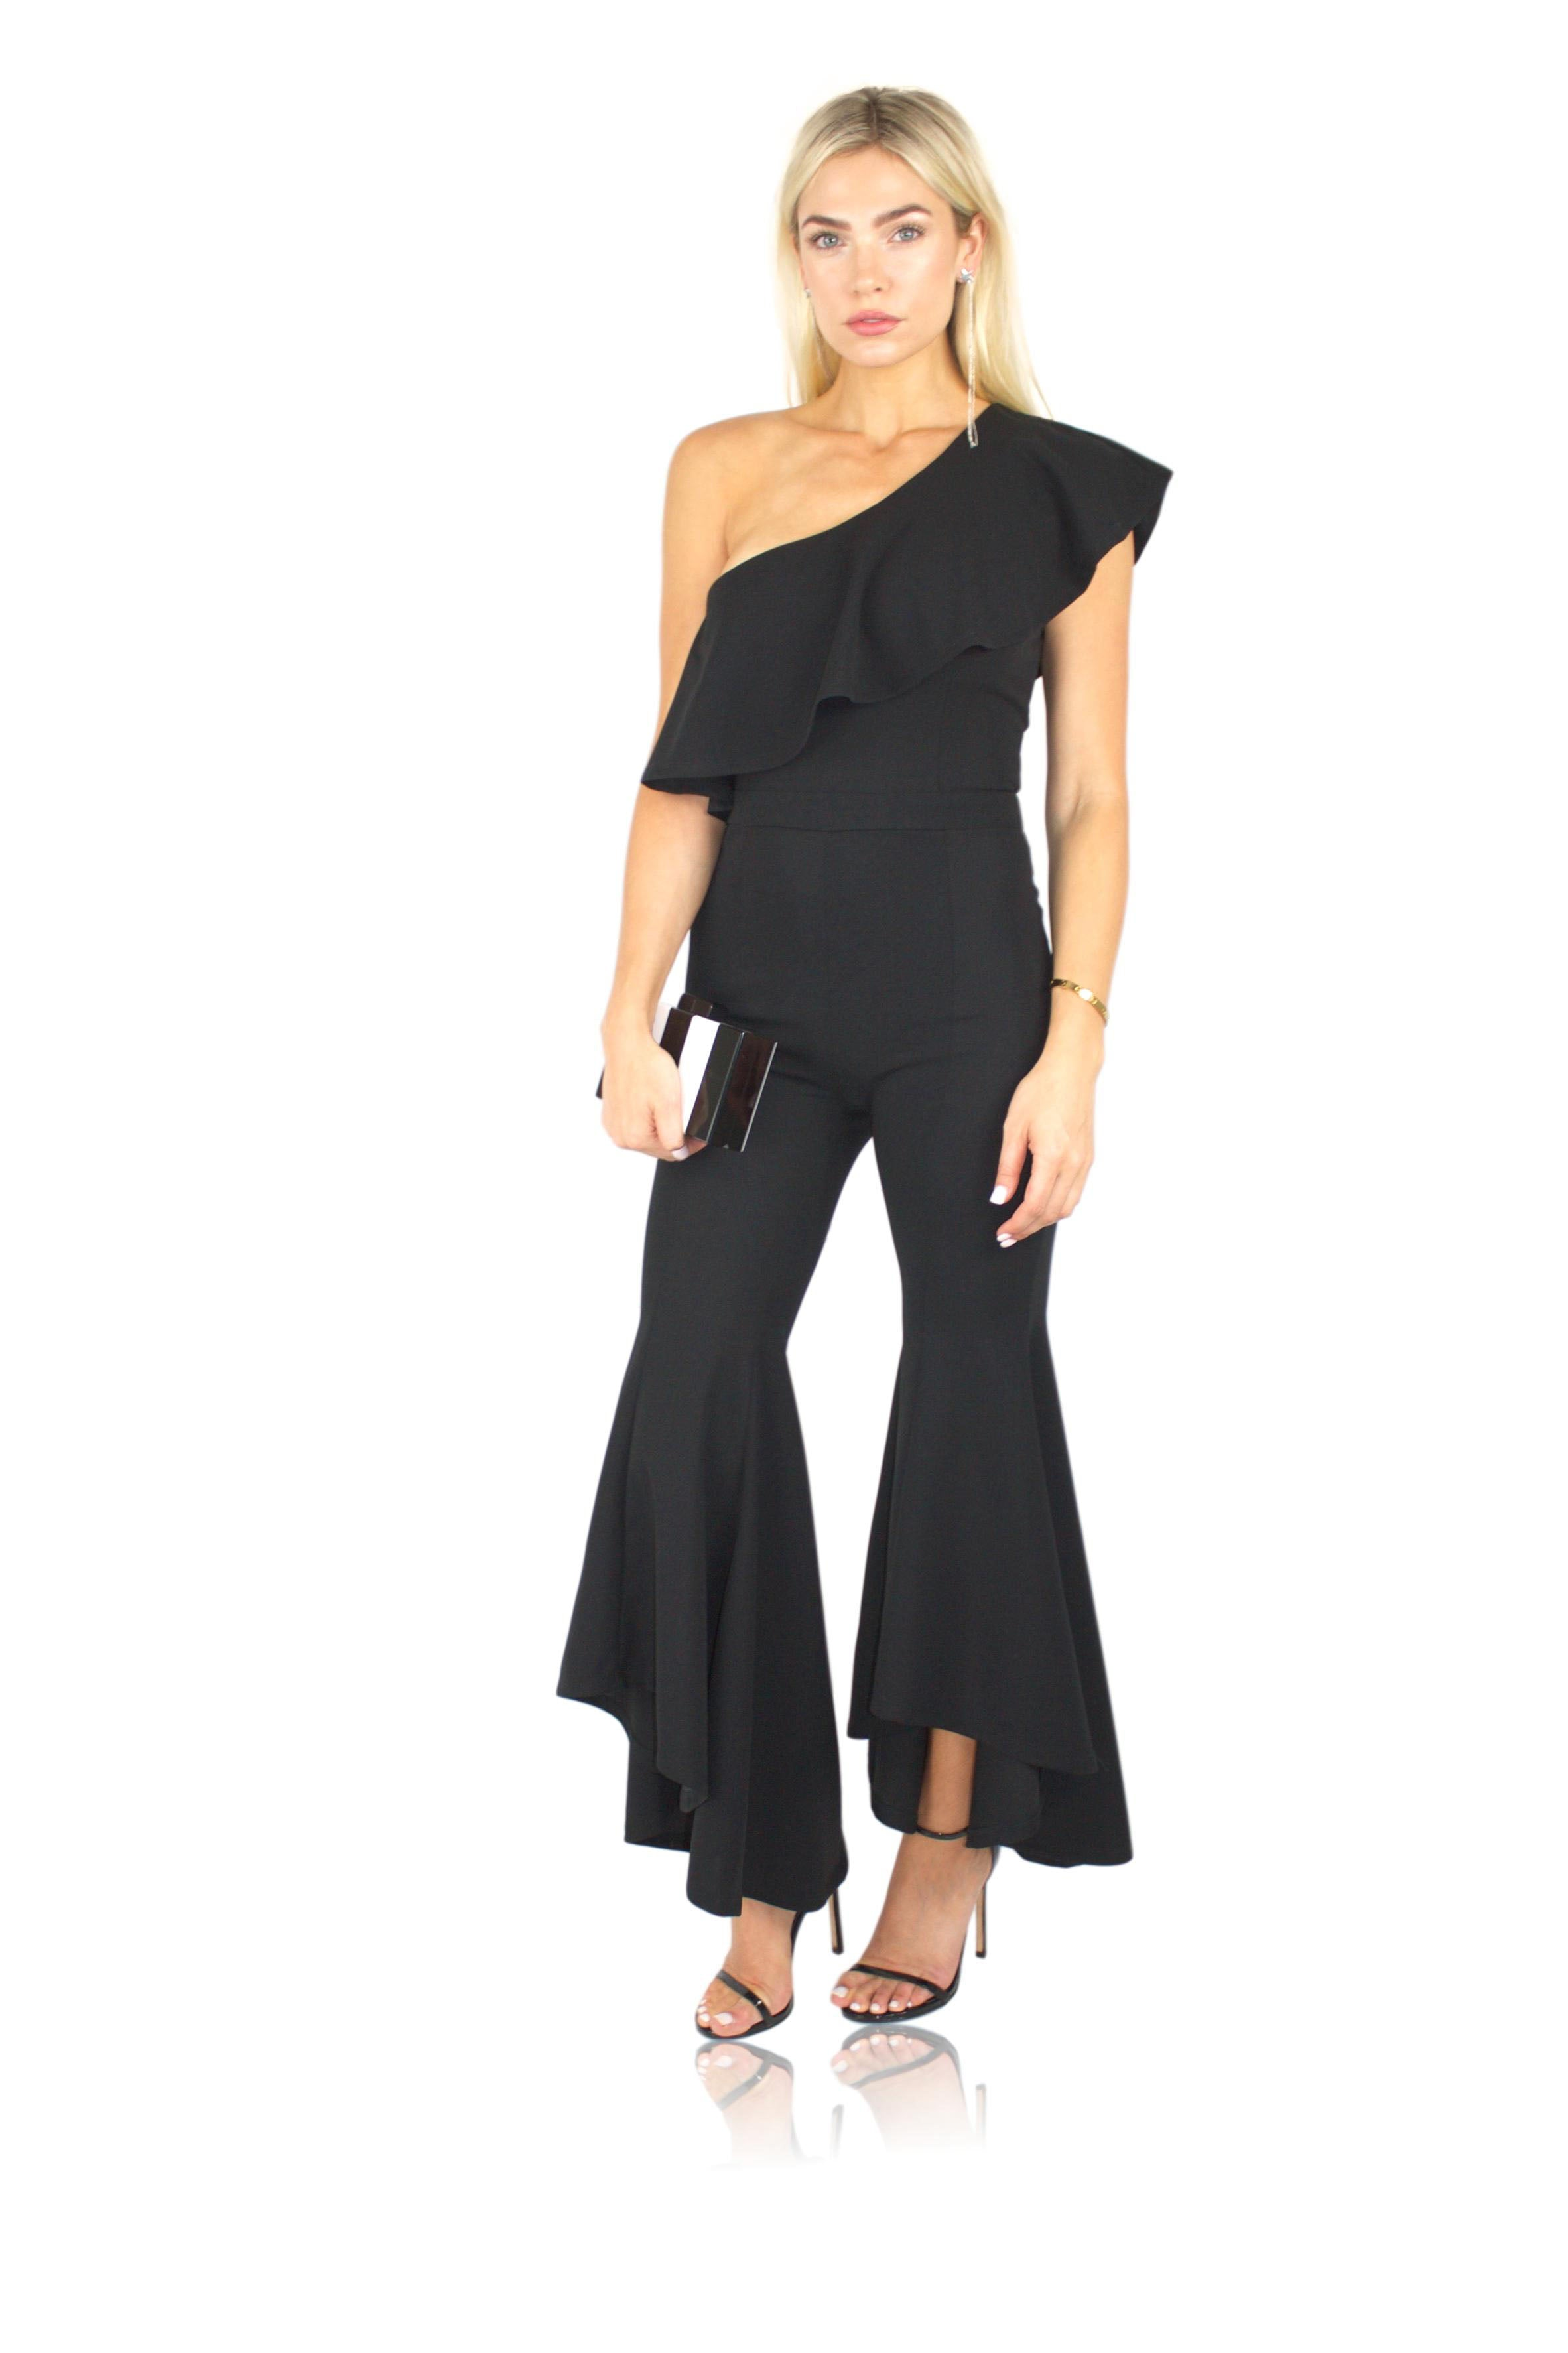 BOMBOM JUMPSUIT / FINAL CLEARANCE